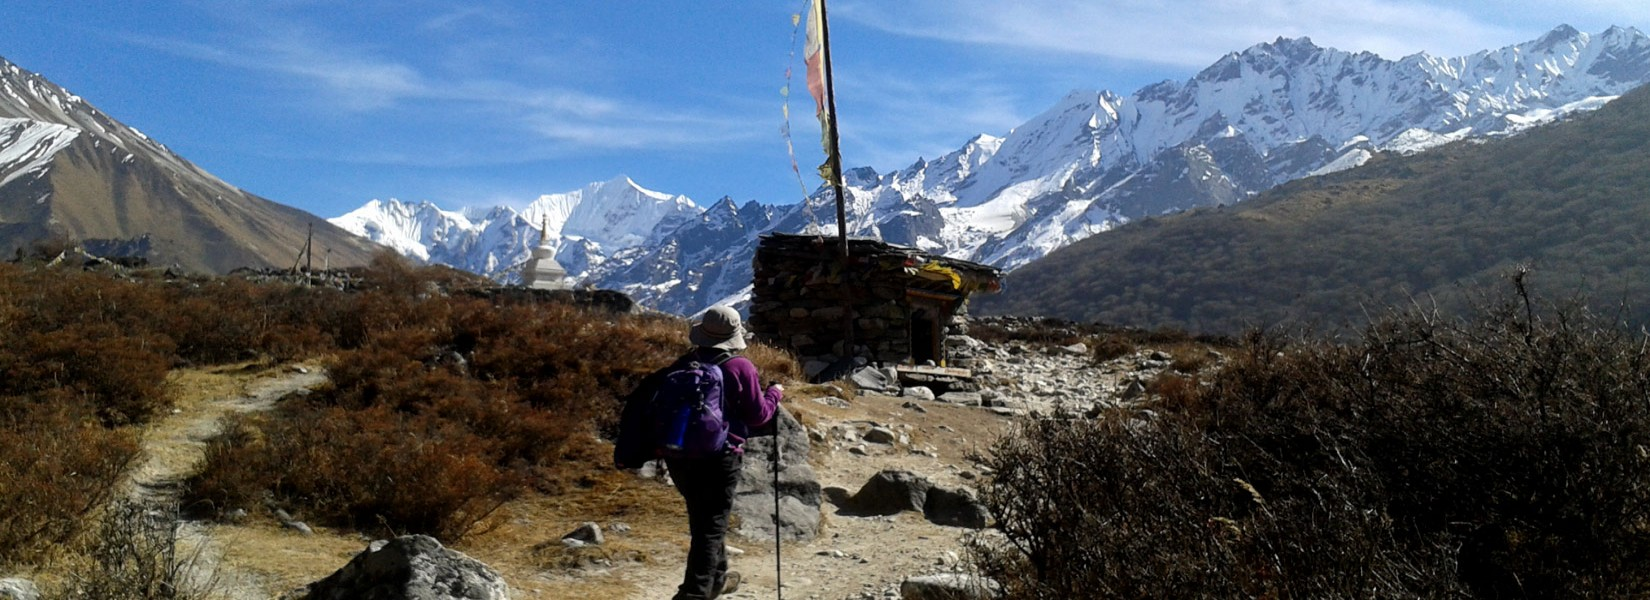 Langtang Valley Trek Photo